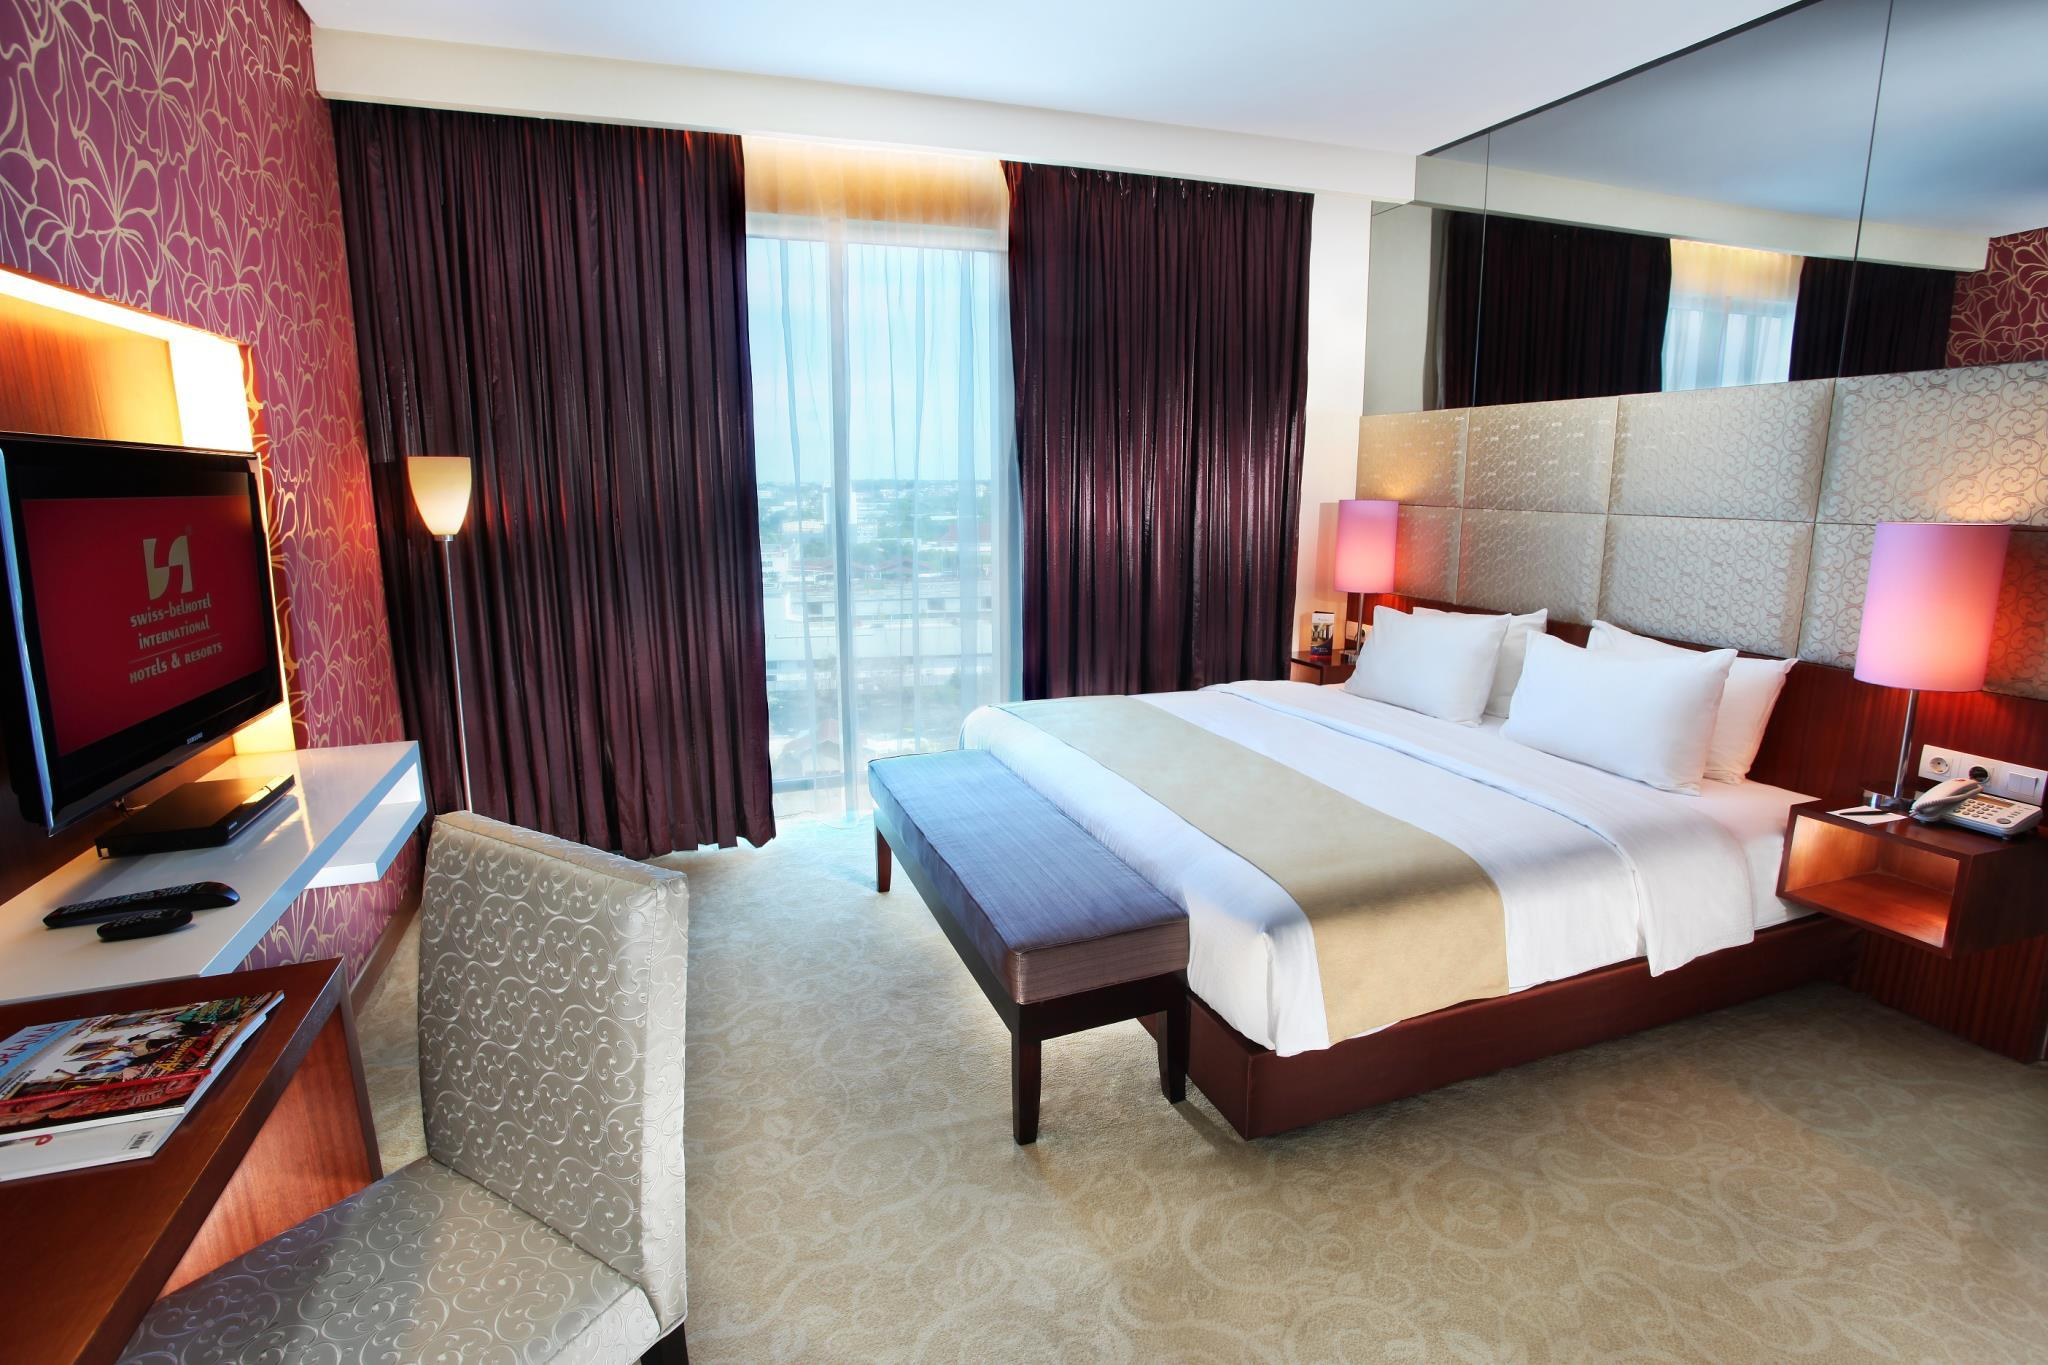 Twin/Double room - De Luxe - Breakfast